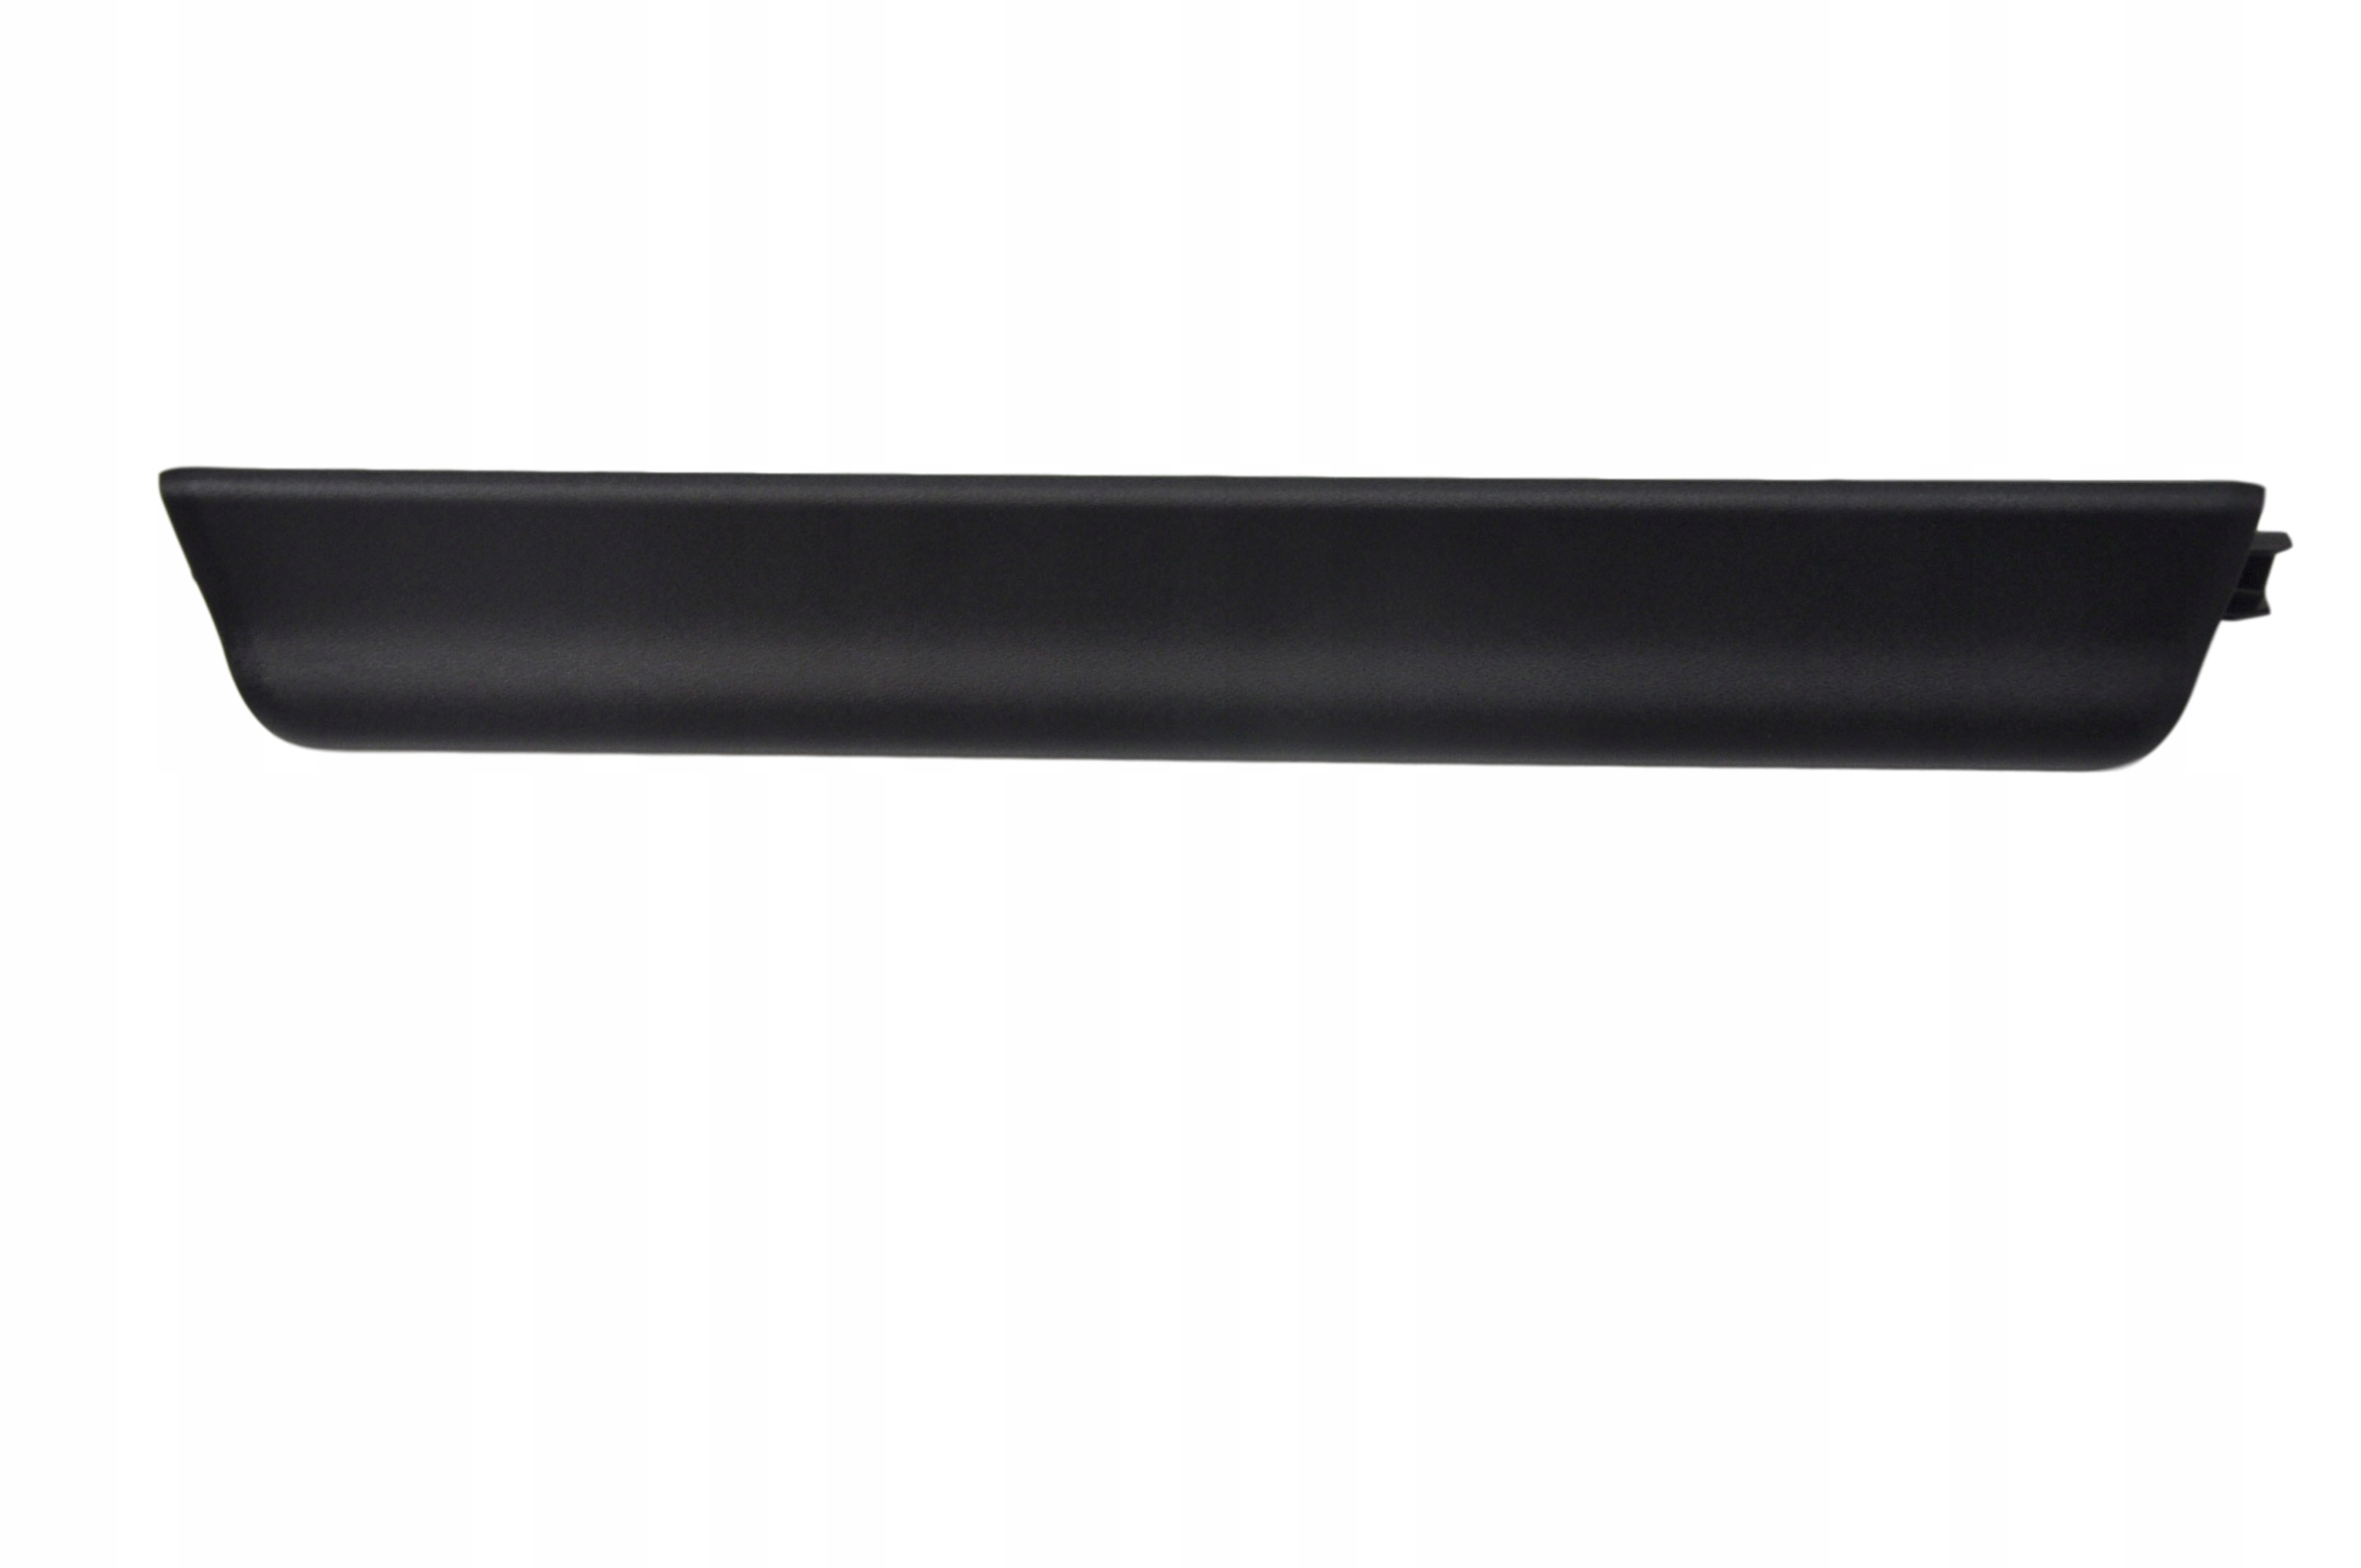 Picture of VOLVO S80 COVER SIDE SKIRT FRONT LEFT OE